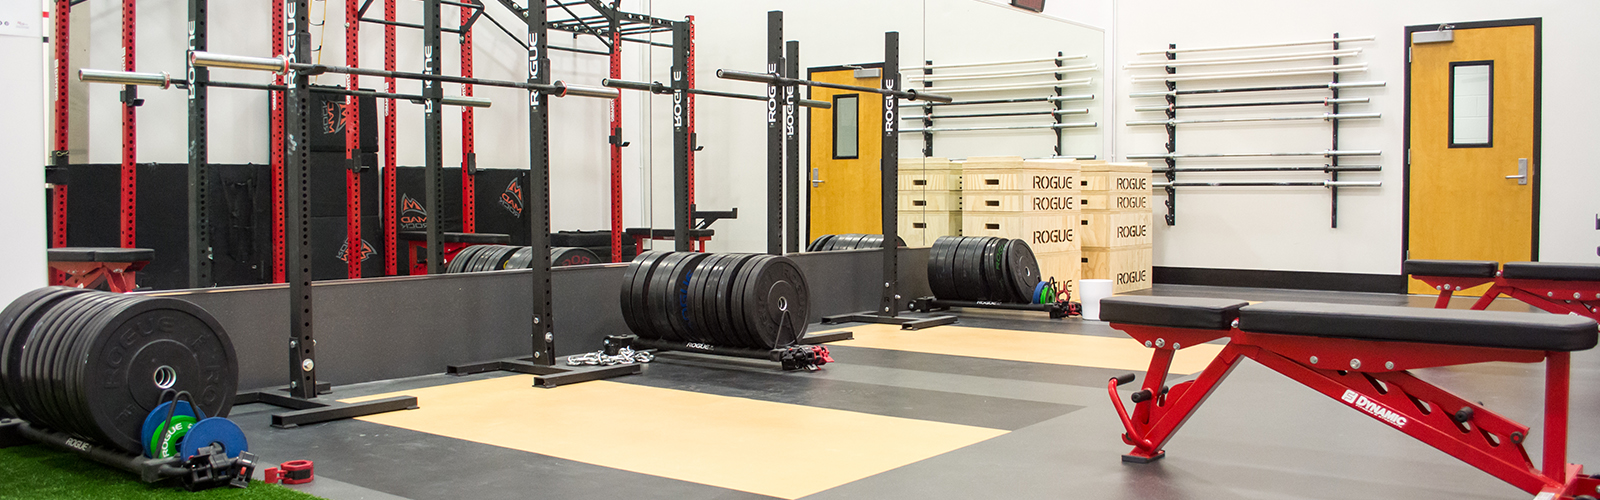 Photo of an indoor weight room equipped with benches, plates, squat racks, and barbells